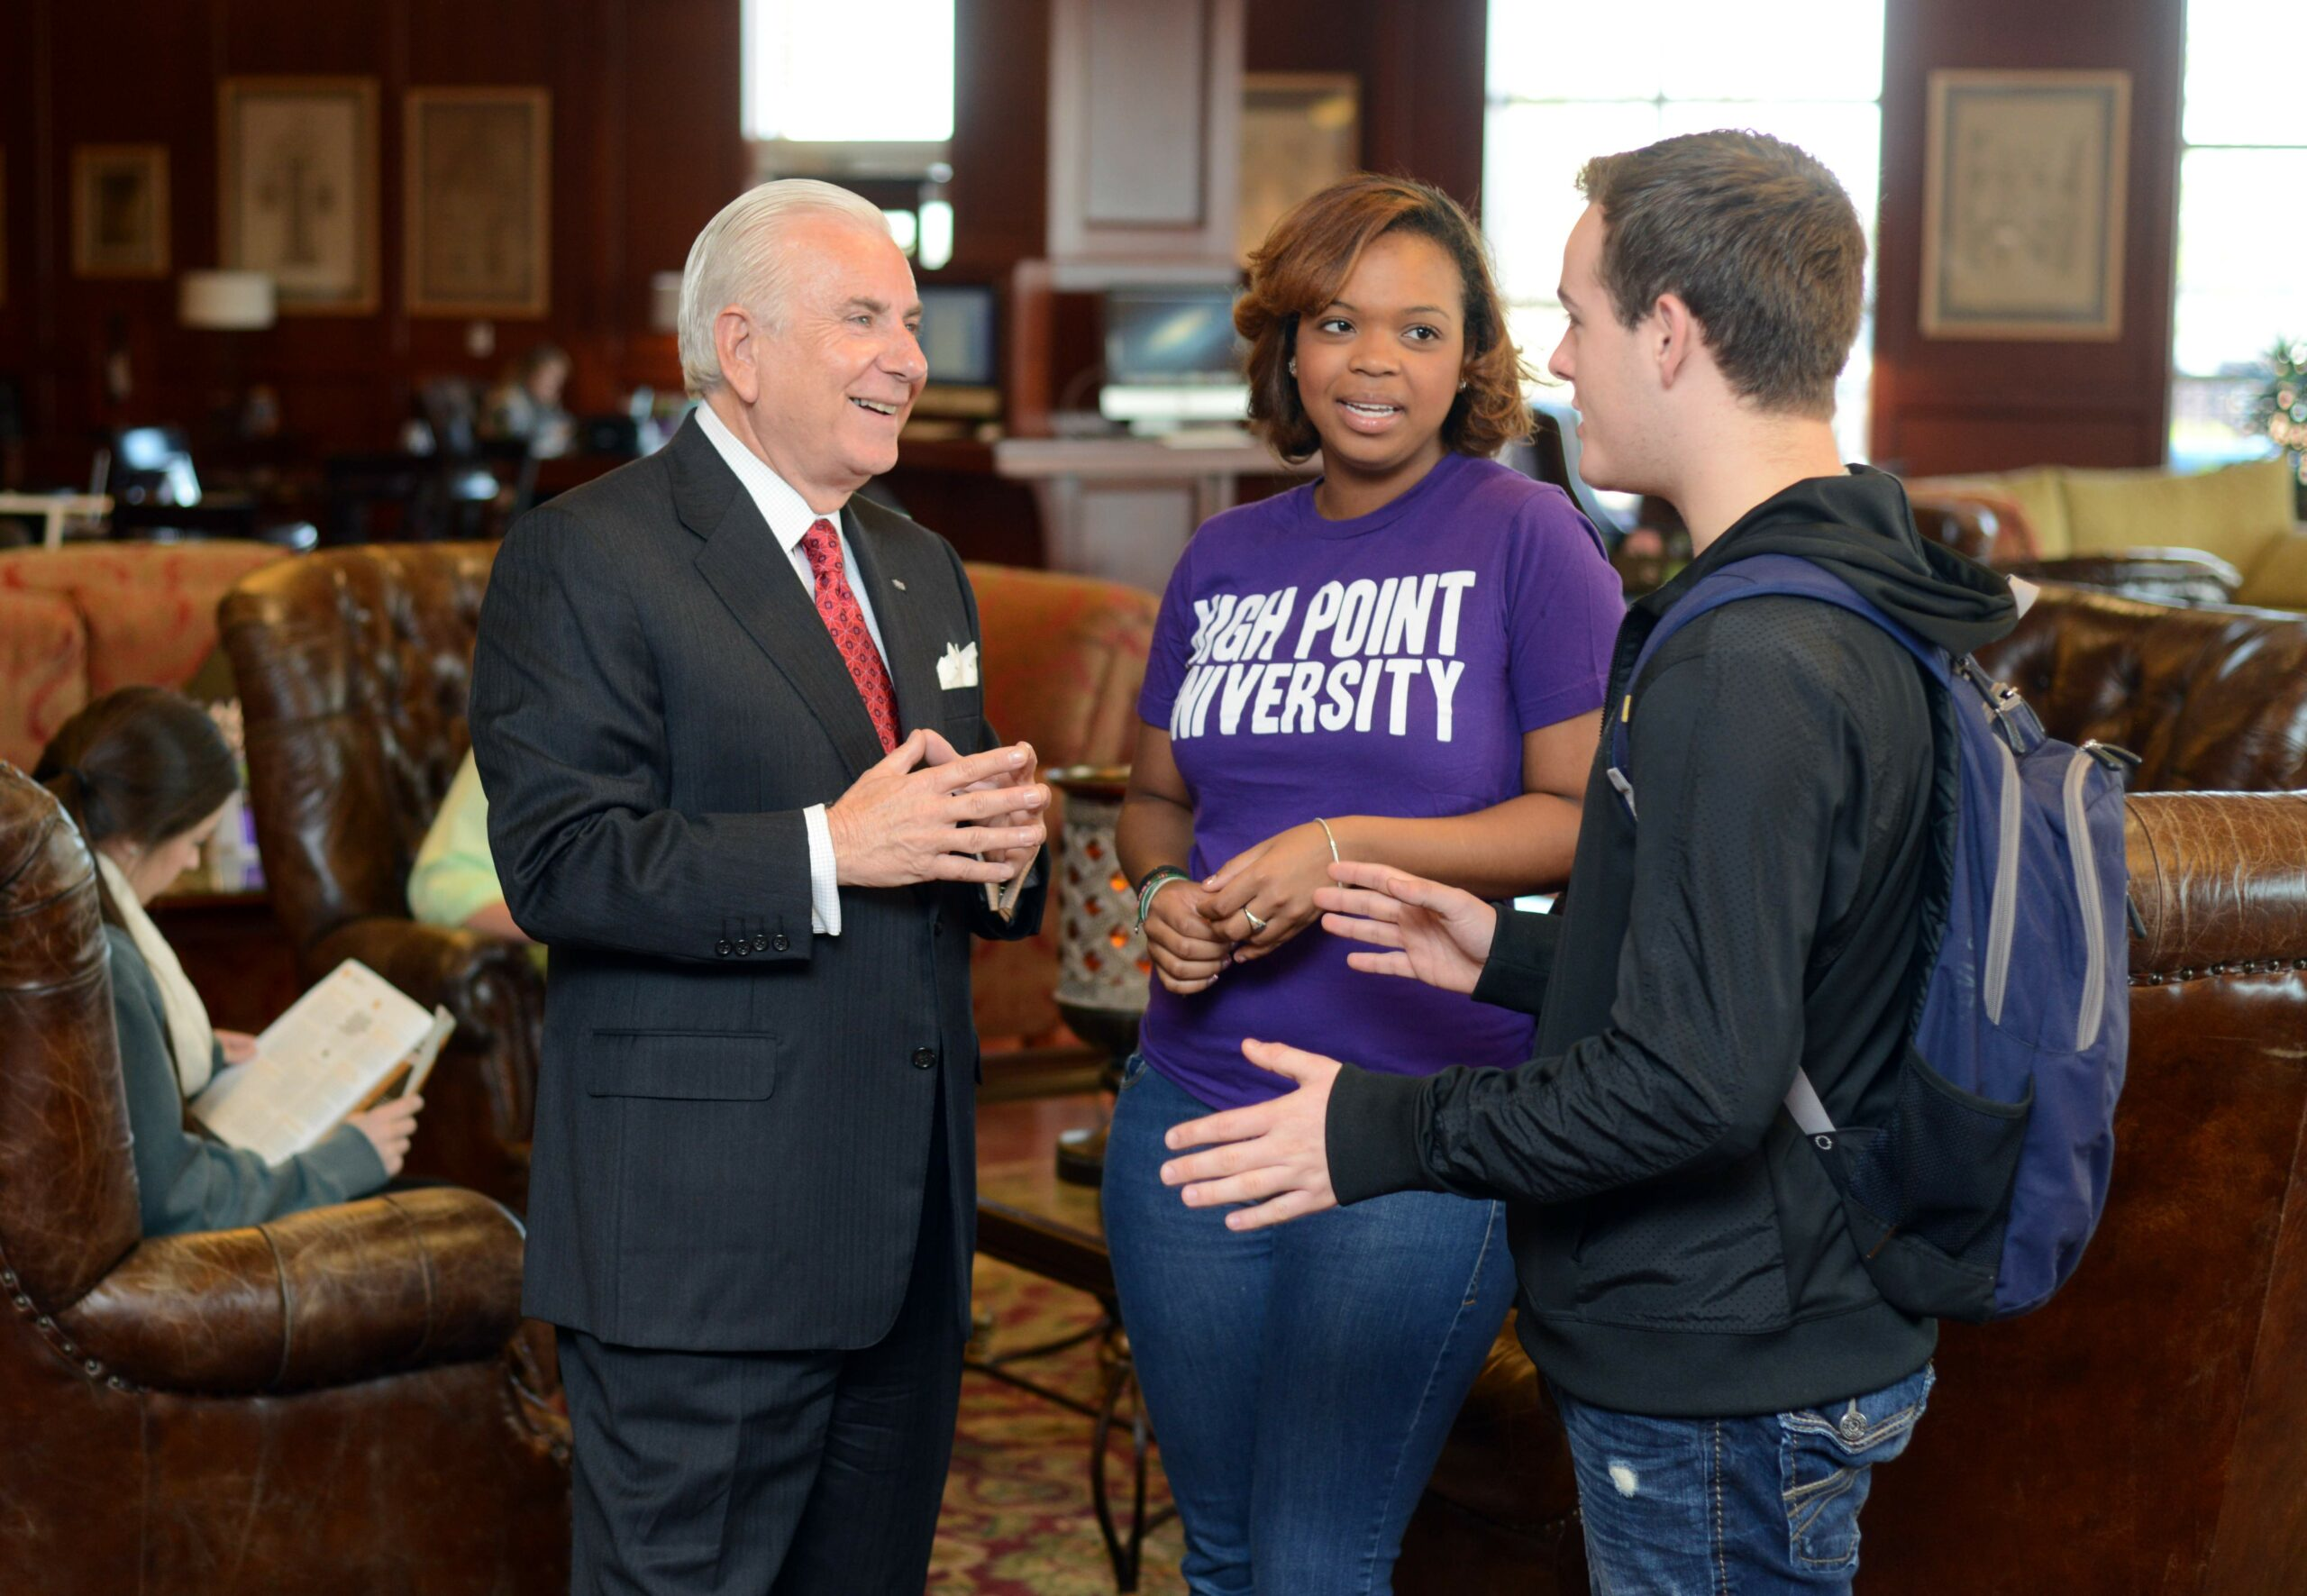 President Qubein with Students